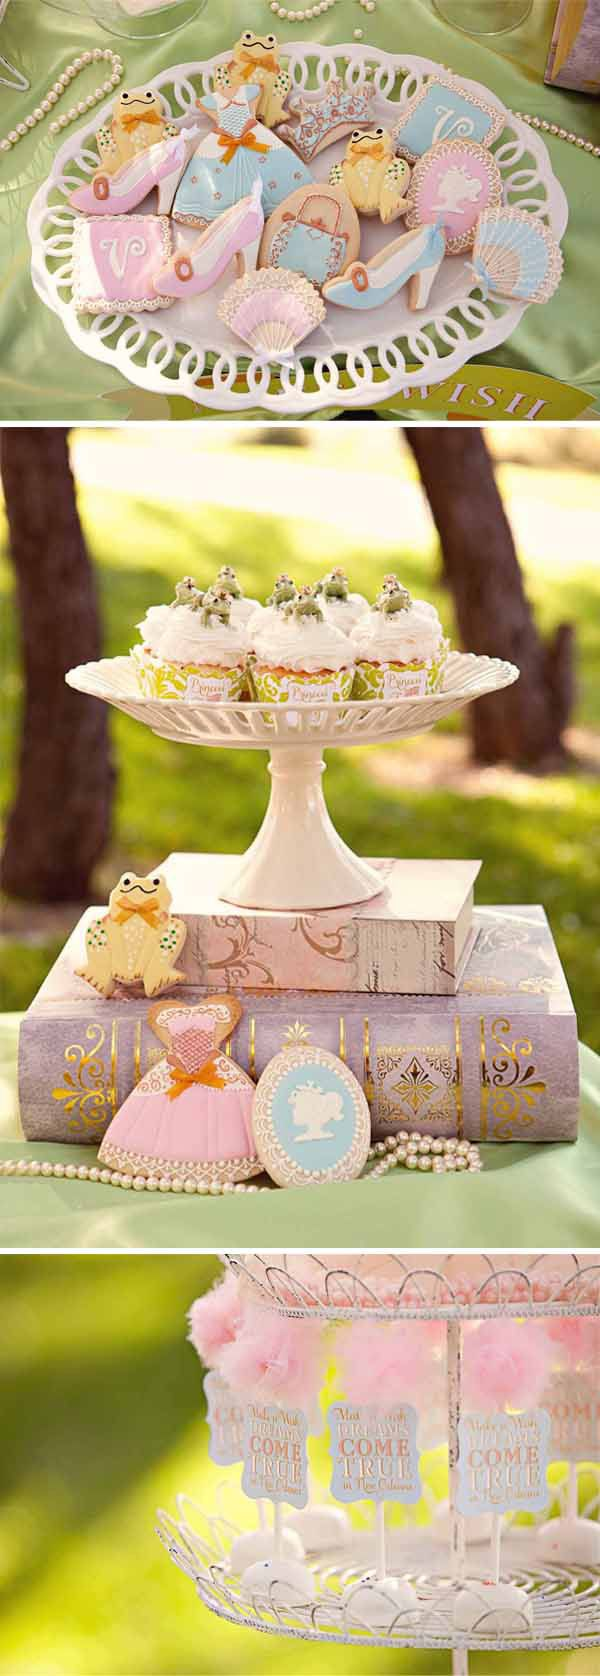 234 best Princess party designs images on Pinterest | Birthday party ...